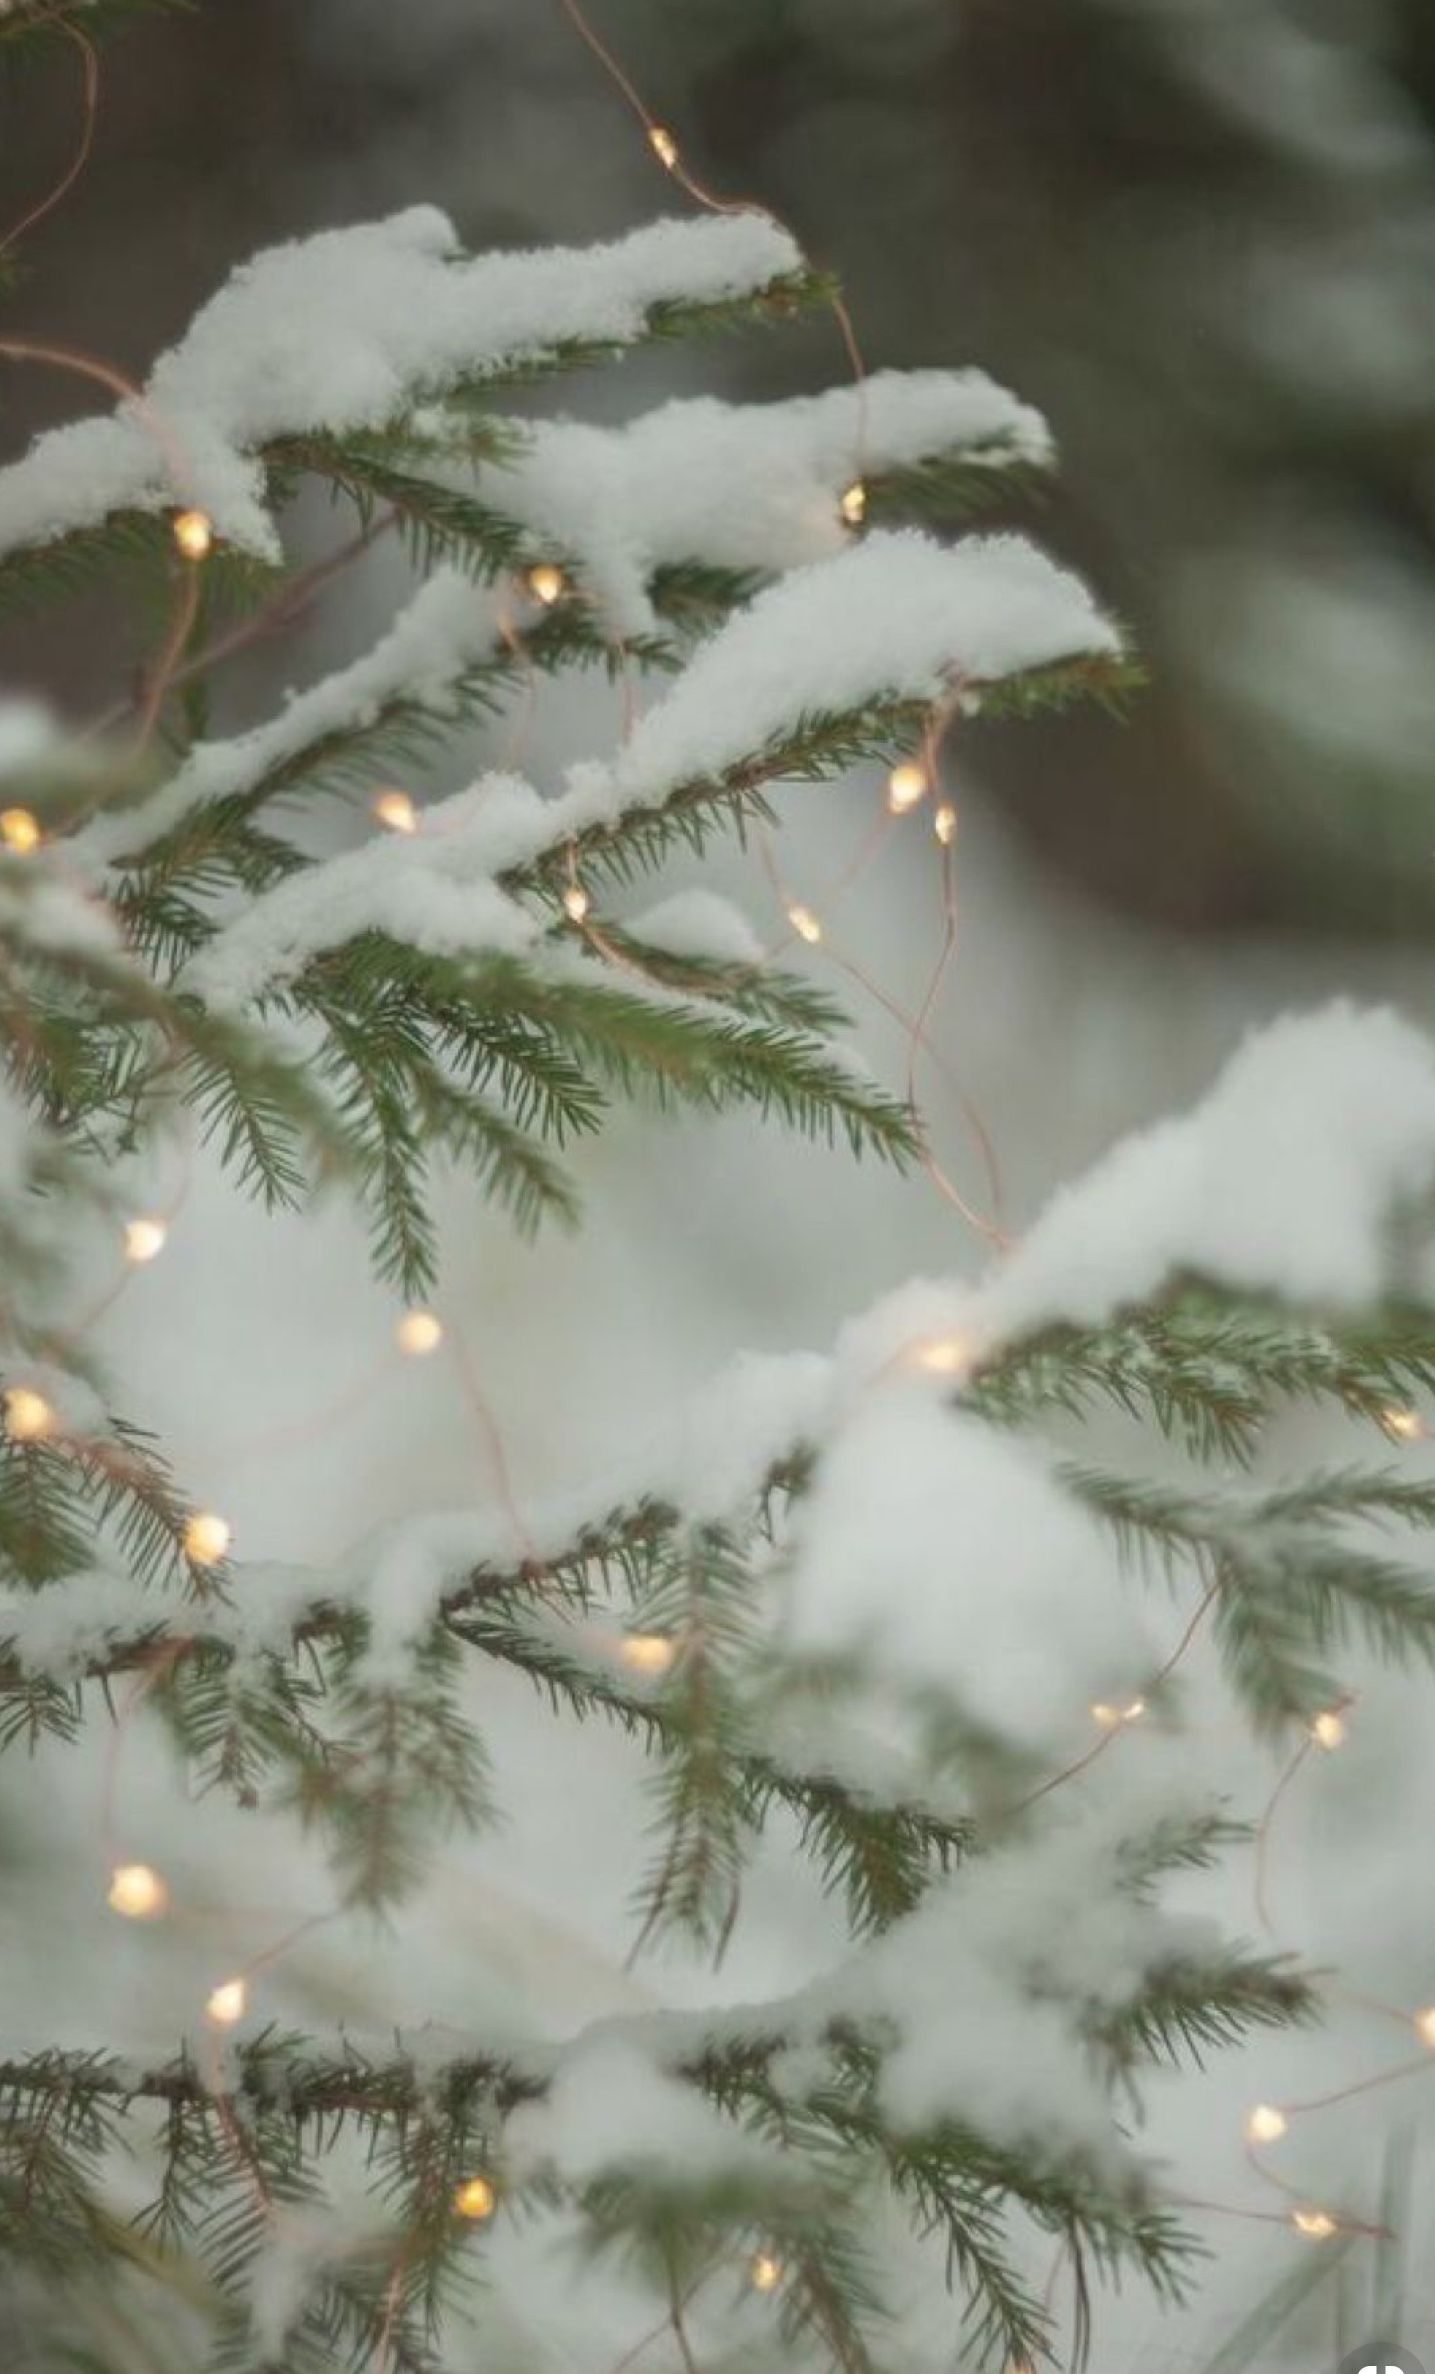 Unlike The Rest At Least The Snow Doesn T Lie The World Is Beautiful But Cold Cold To The Point It B Christmas Wallpaper Winter Christmas Christmas Lights